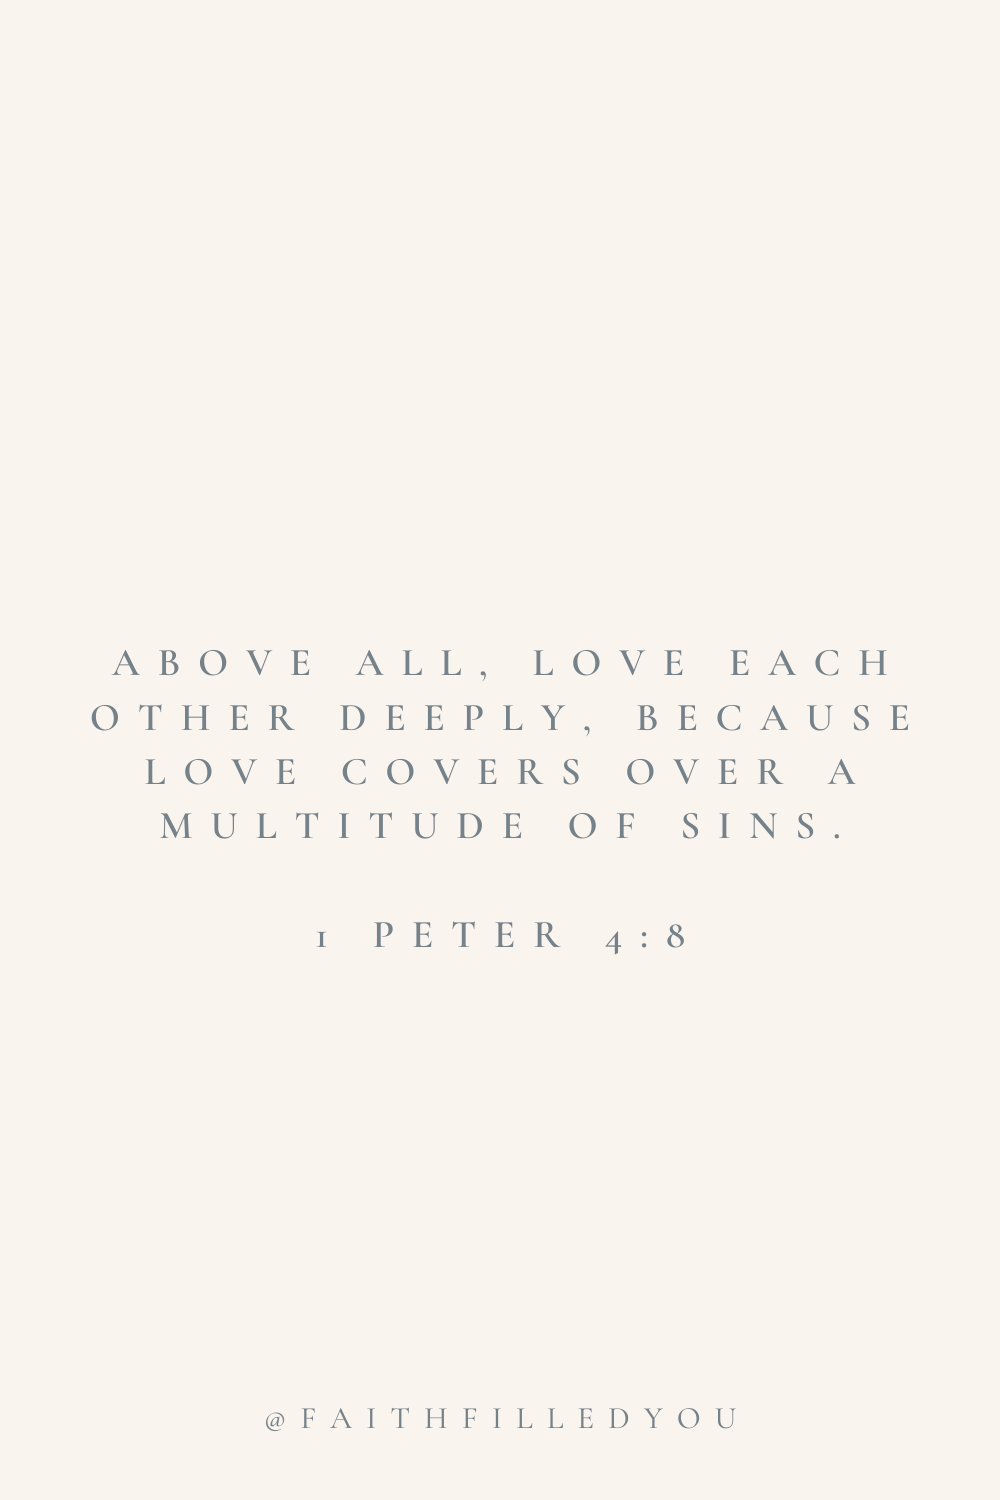 Bible Verses About Love (1 Peter 4:8)